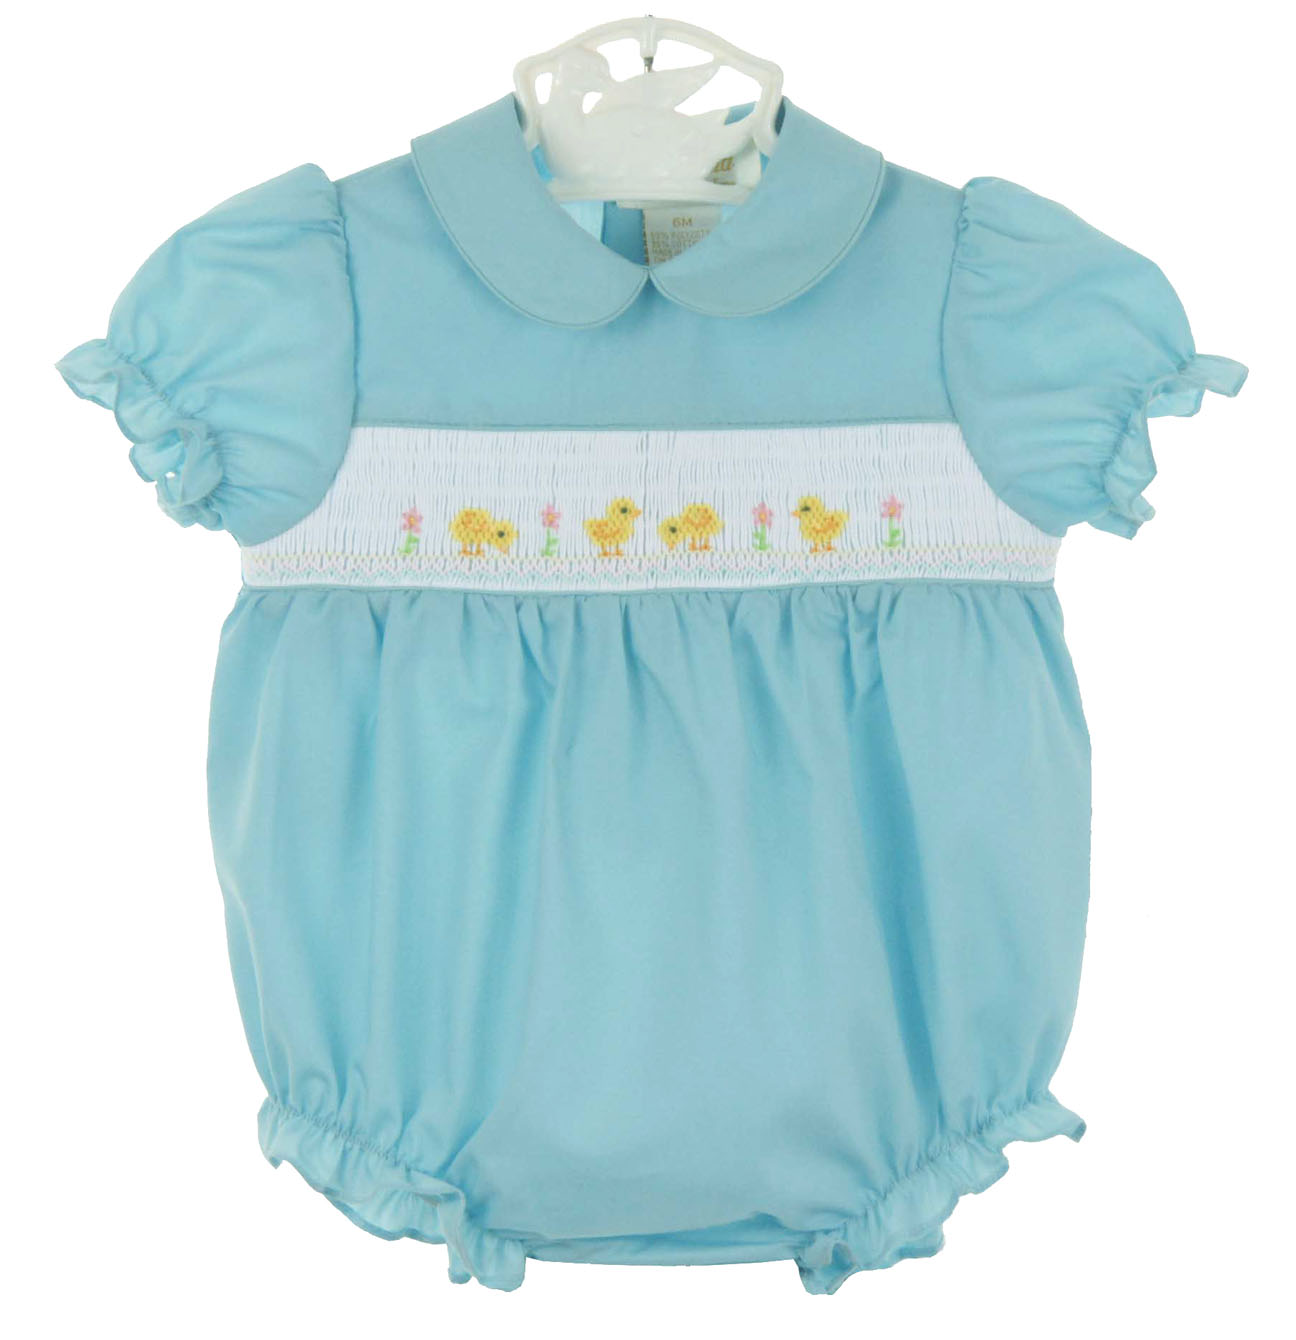 56c6520a4f3 NEW Rosalina Robins Egg Blue Smocked Bubble with Peeps Embroidery